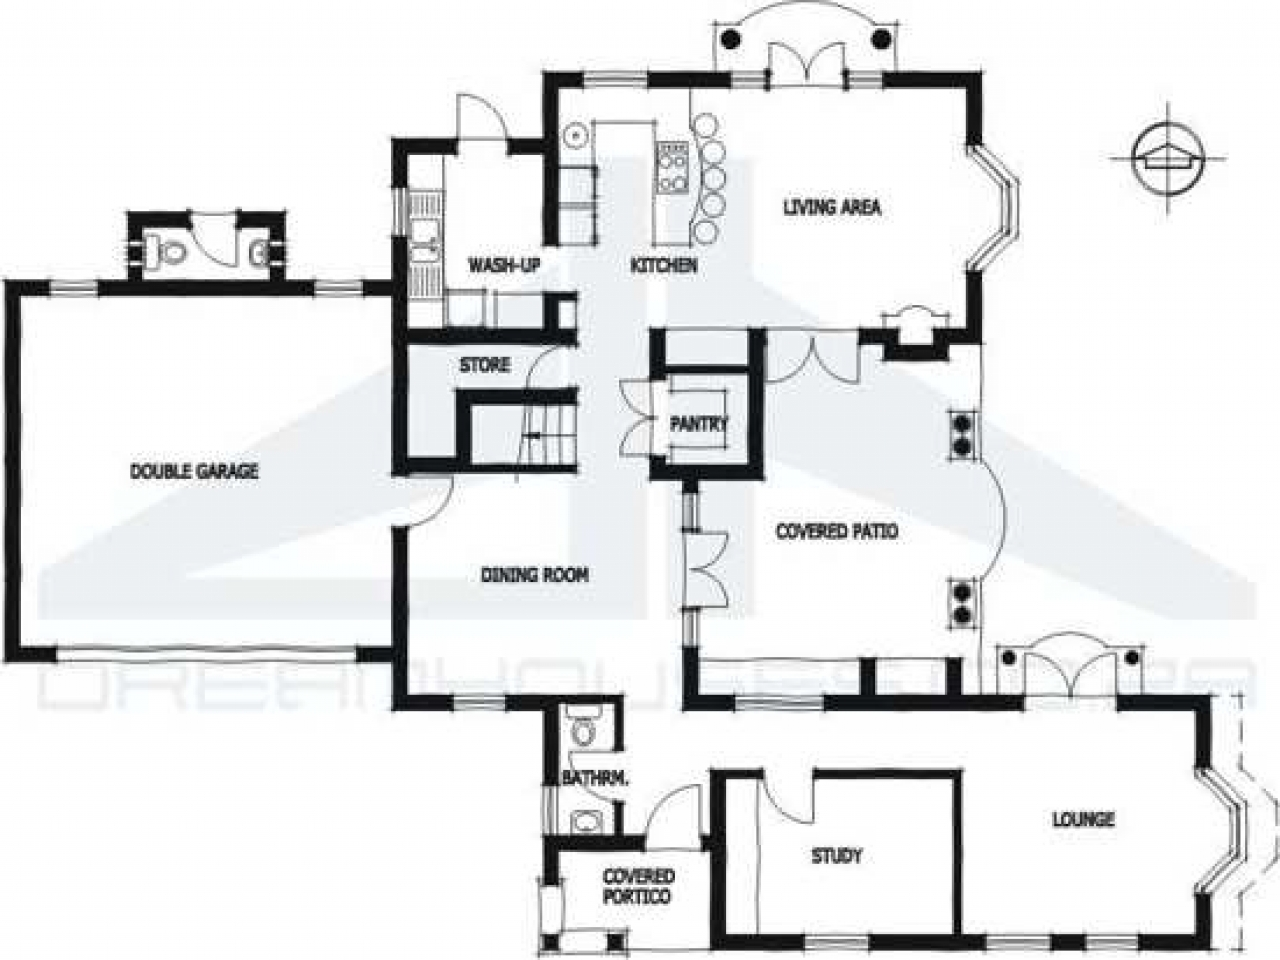 South African House Plans House Plans South Africa House Plans In Zimbabwe Tuscan